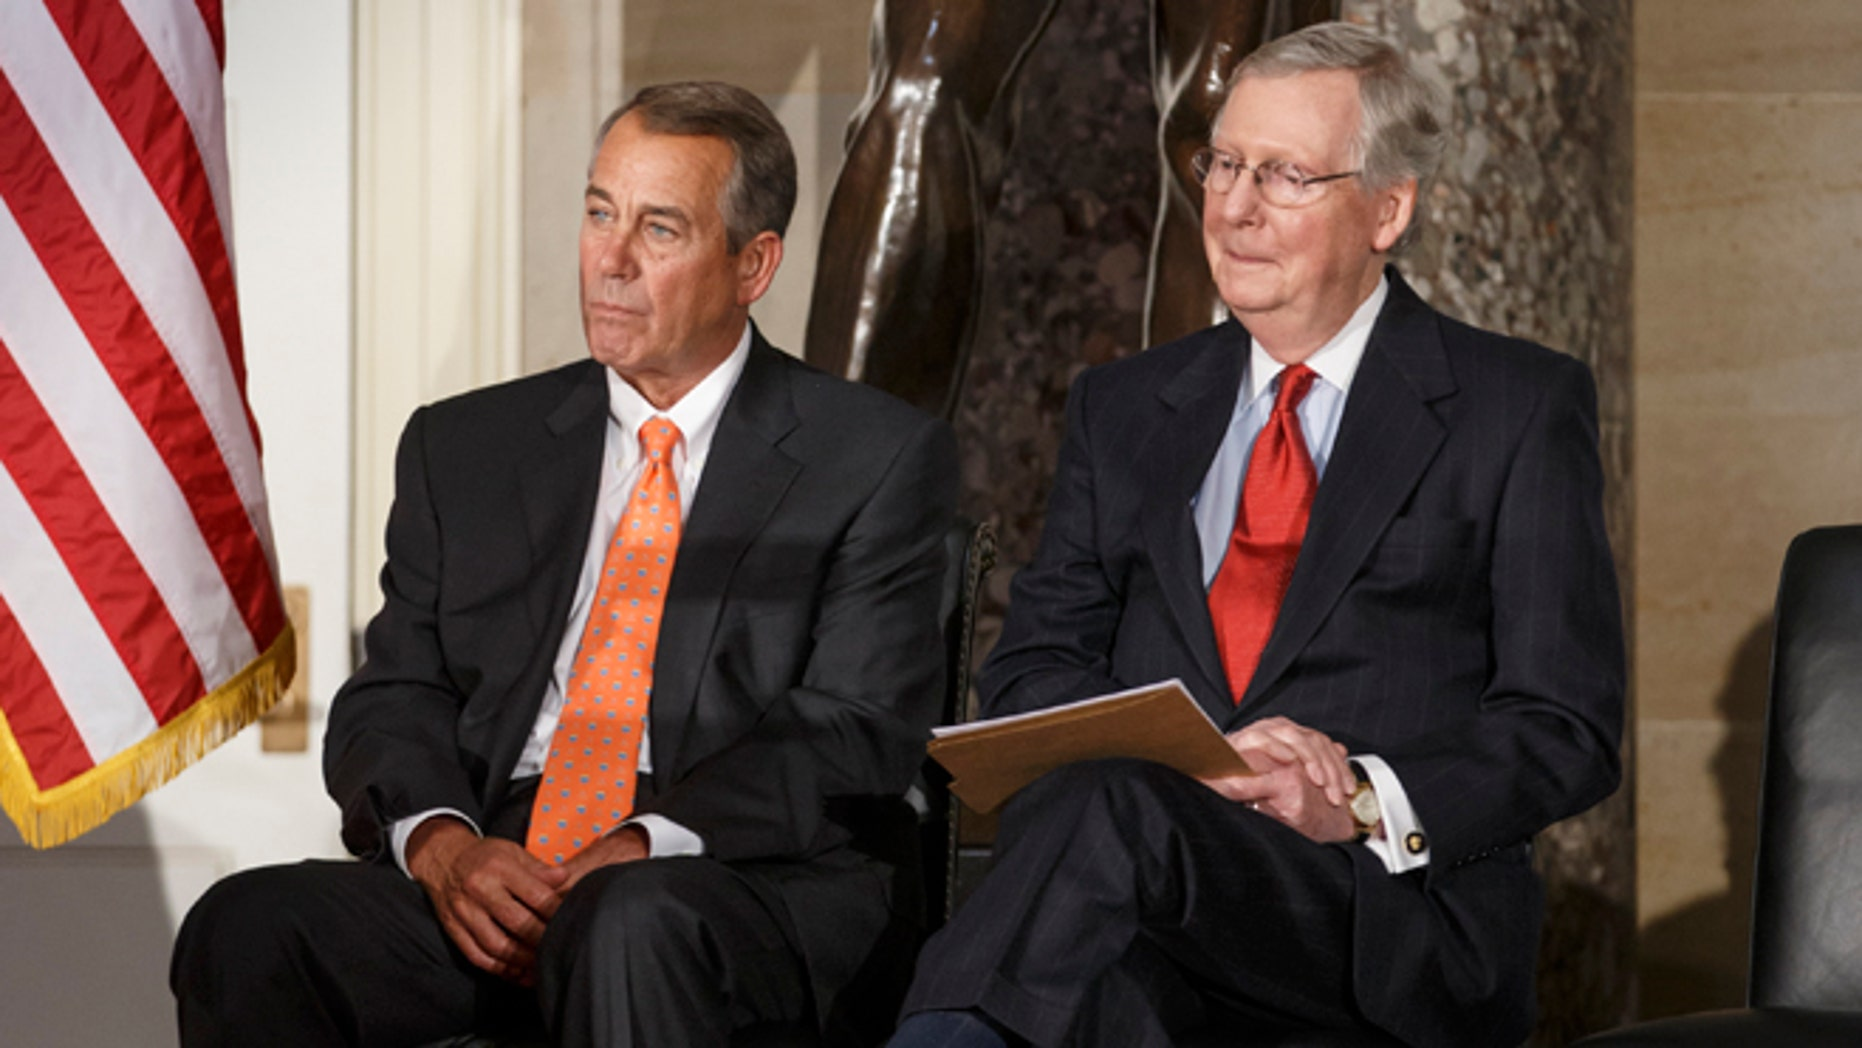 """House Speaker John Boehner of Ohio, and Senate Majority Leader Mitch McConnell of Ky. attend a statue unveiling ceremony honoring former Arizona Sen. Barry Goldwater, Wednesday, Feb. 11, 2015, on Capitol Hill in Washington. Boehner and McConnell are at a standstill over provisions attached to a Homeland Security spending bill aimed at blocking President Barack Obama's executive actions on immigration. McConnell declared a Senate stalemate Tuesday and called on the House to make the next move to avoid an agency shutdown. House Republicans said they had no intention of doing so and today, Wednesday, Feb. 11, 2015, Speaker Boehner declared that Senate Democrats should """"get off their ass"""" and pass a bill to fund the Homeland Security Department and restrict President Barack Obama's executive moves on immigration.  (AP Photo/J. Scott Applewhite)"""